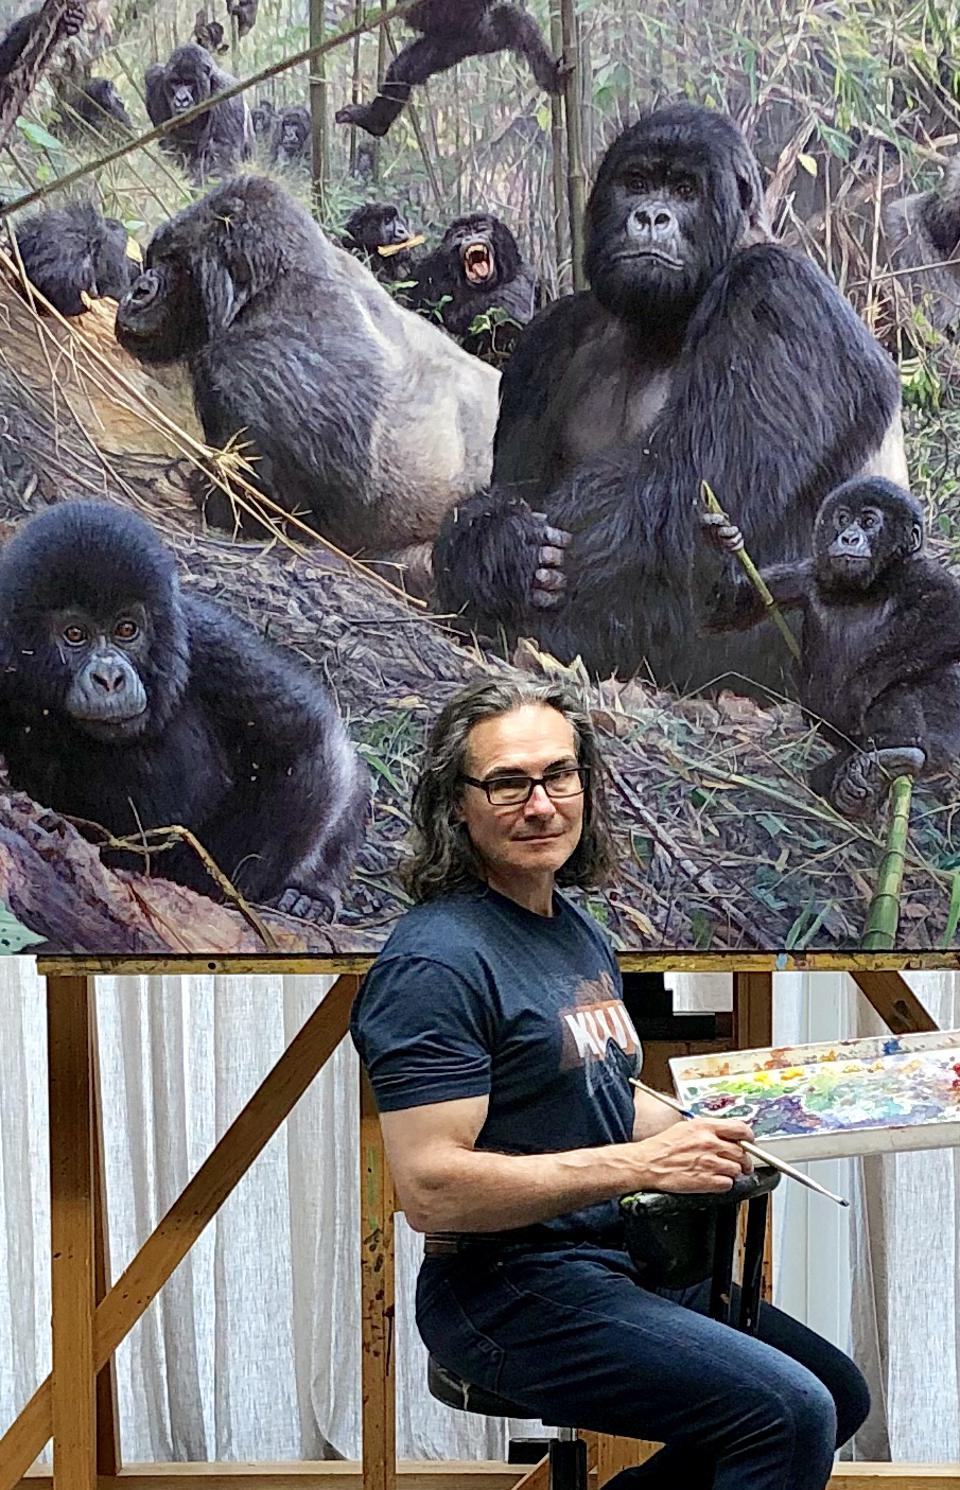 Conservation Africa News - Banovich at work on a dramatic mountain gorilla scene.